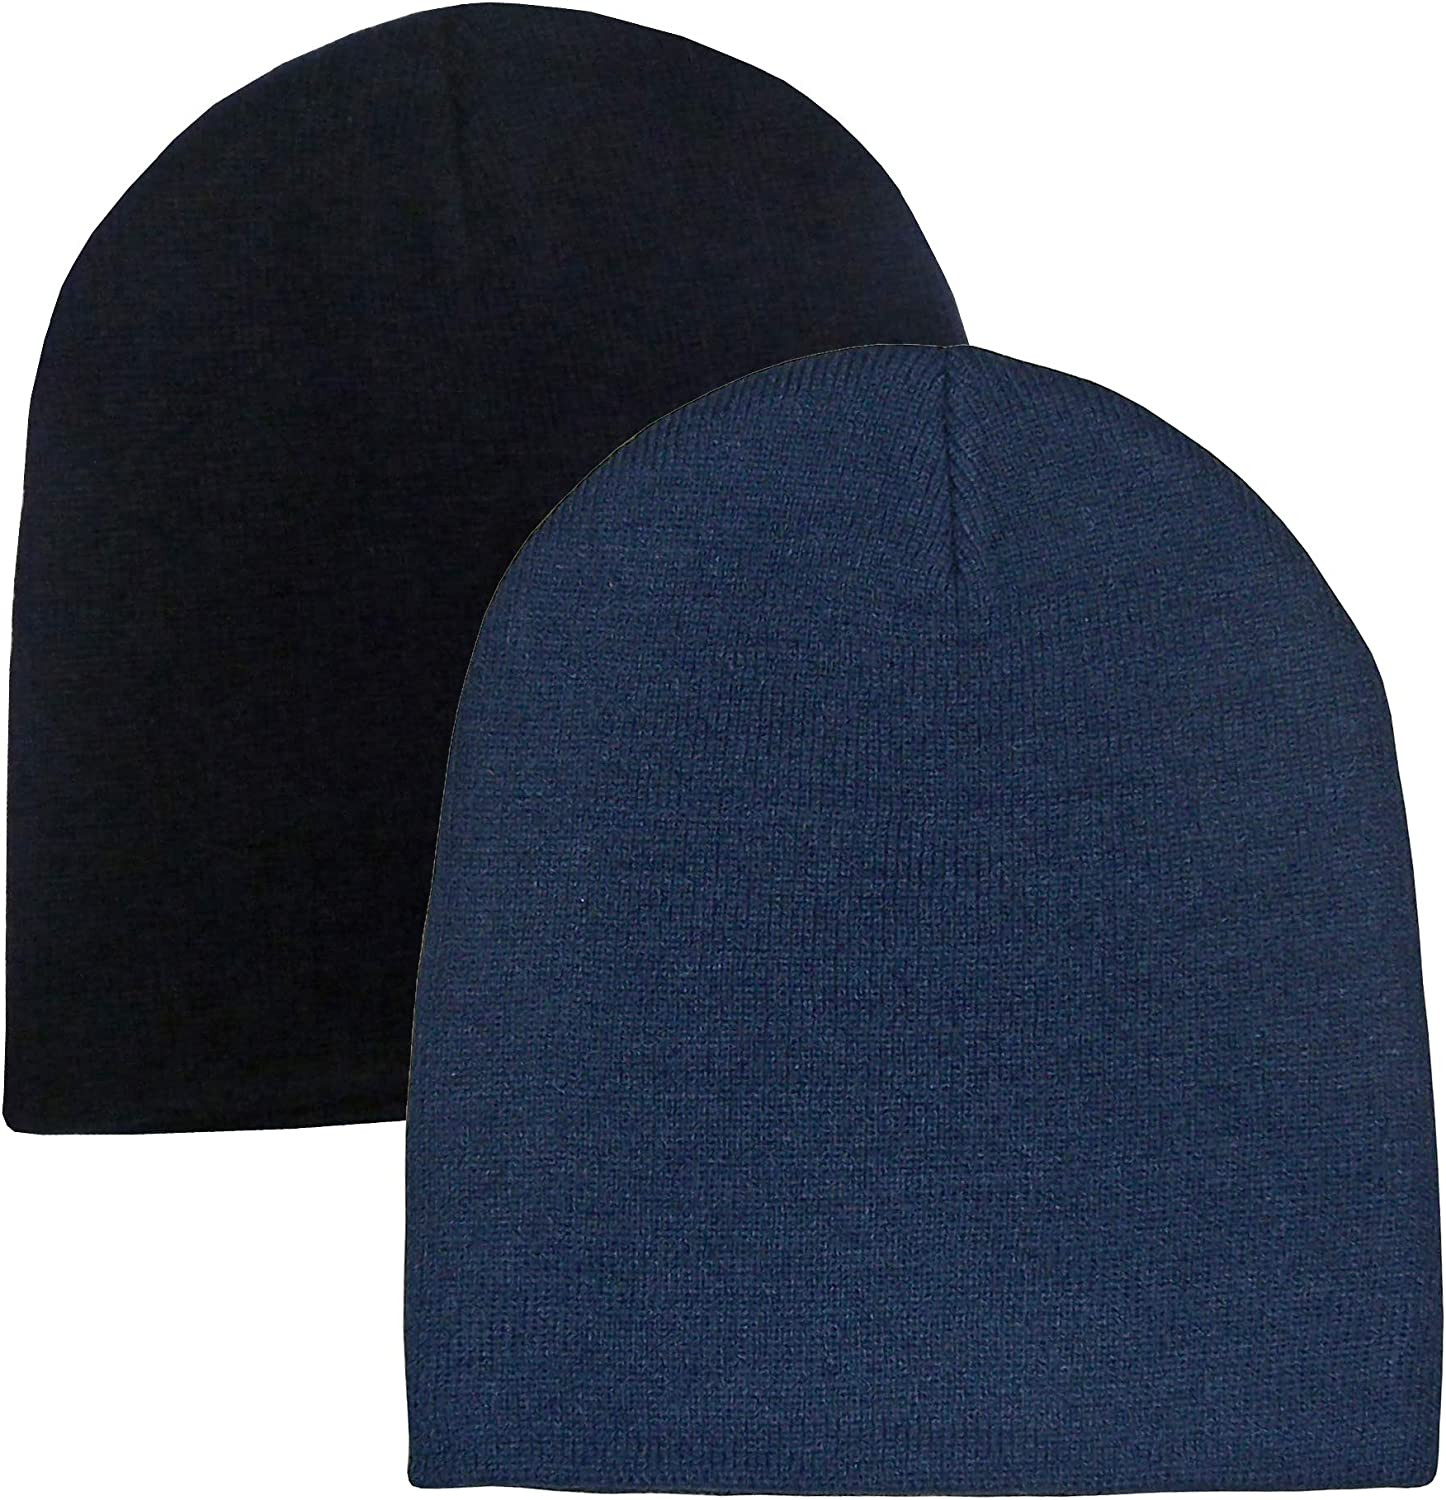 NIce Caps Kids Unisex Double Layered Knit Beanie Cap 2 Hat Pack